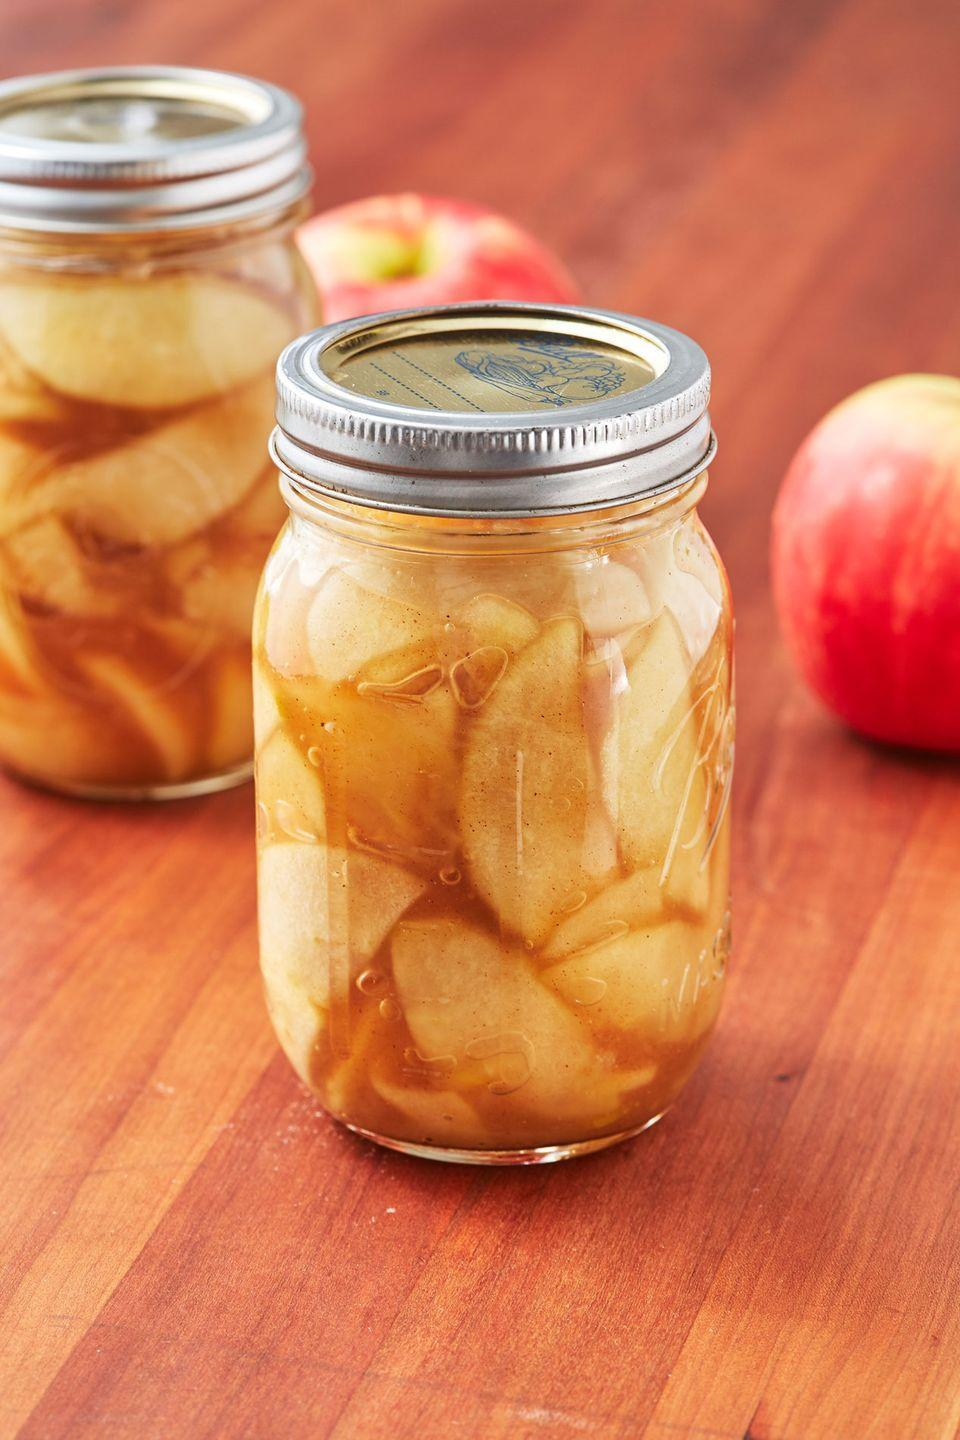 "<p>The MVP of apple pie is obviously the filling. </p><p>Get the recipe from <a href=""https://www.delish.com/cooking/recipe-ideas/a28107994/homemade-apple-pie-filling-recipe/"" rel=""nofollow noopener"" target=""_blank"" data-ylk=""slk:Delish"" class=""link rapid-noclick-resp"">Delish</a>. </p>"